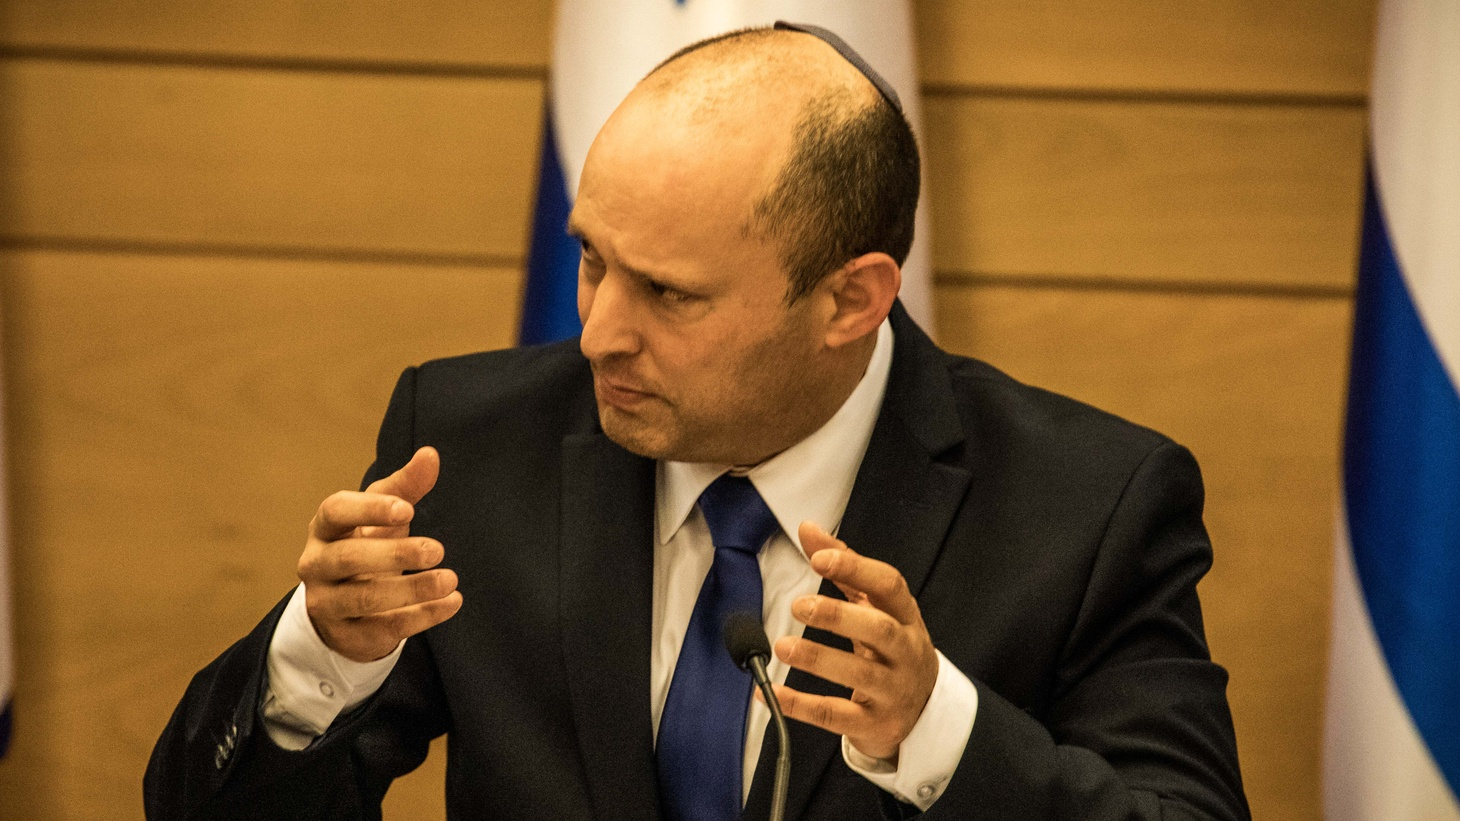 New Israeli Prime Minister Naftali Bennett attends his first cabinet meeting at the Israeli Parliament (Knesset).